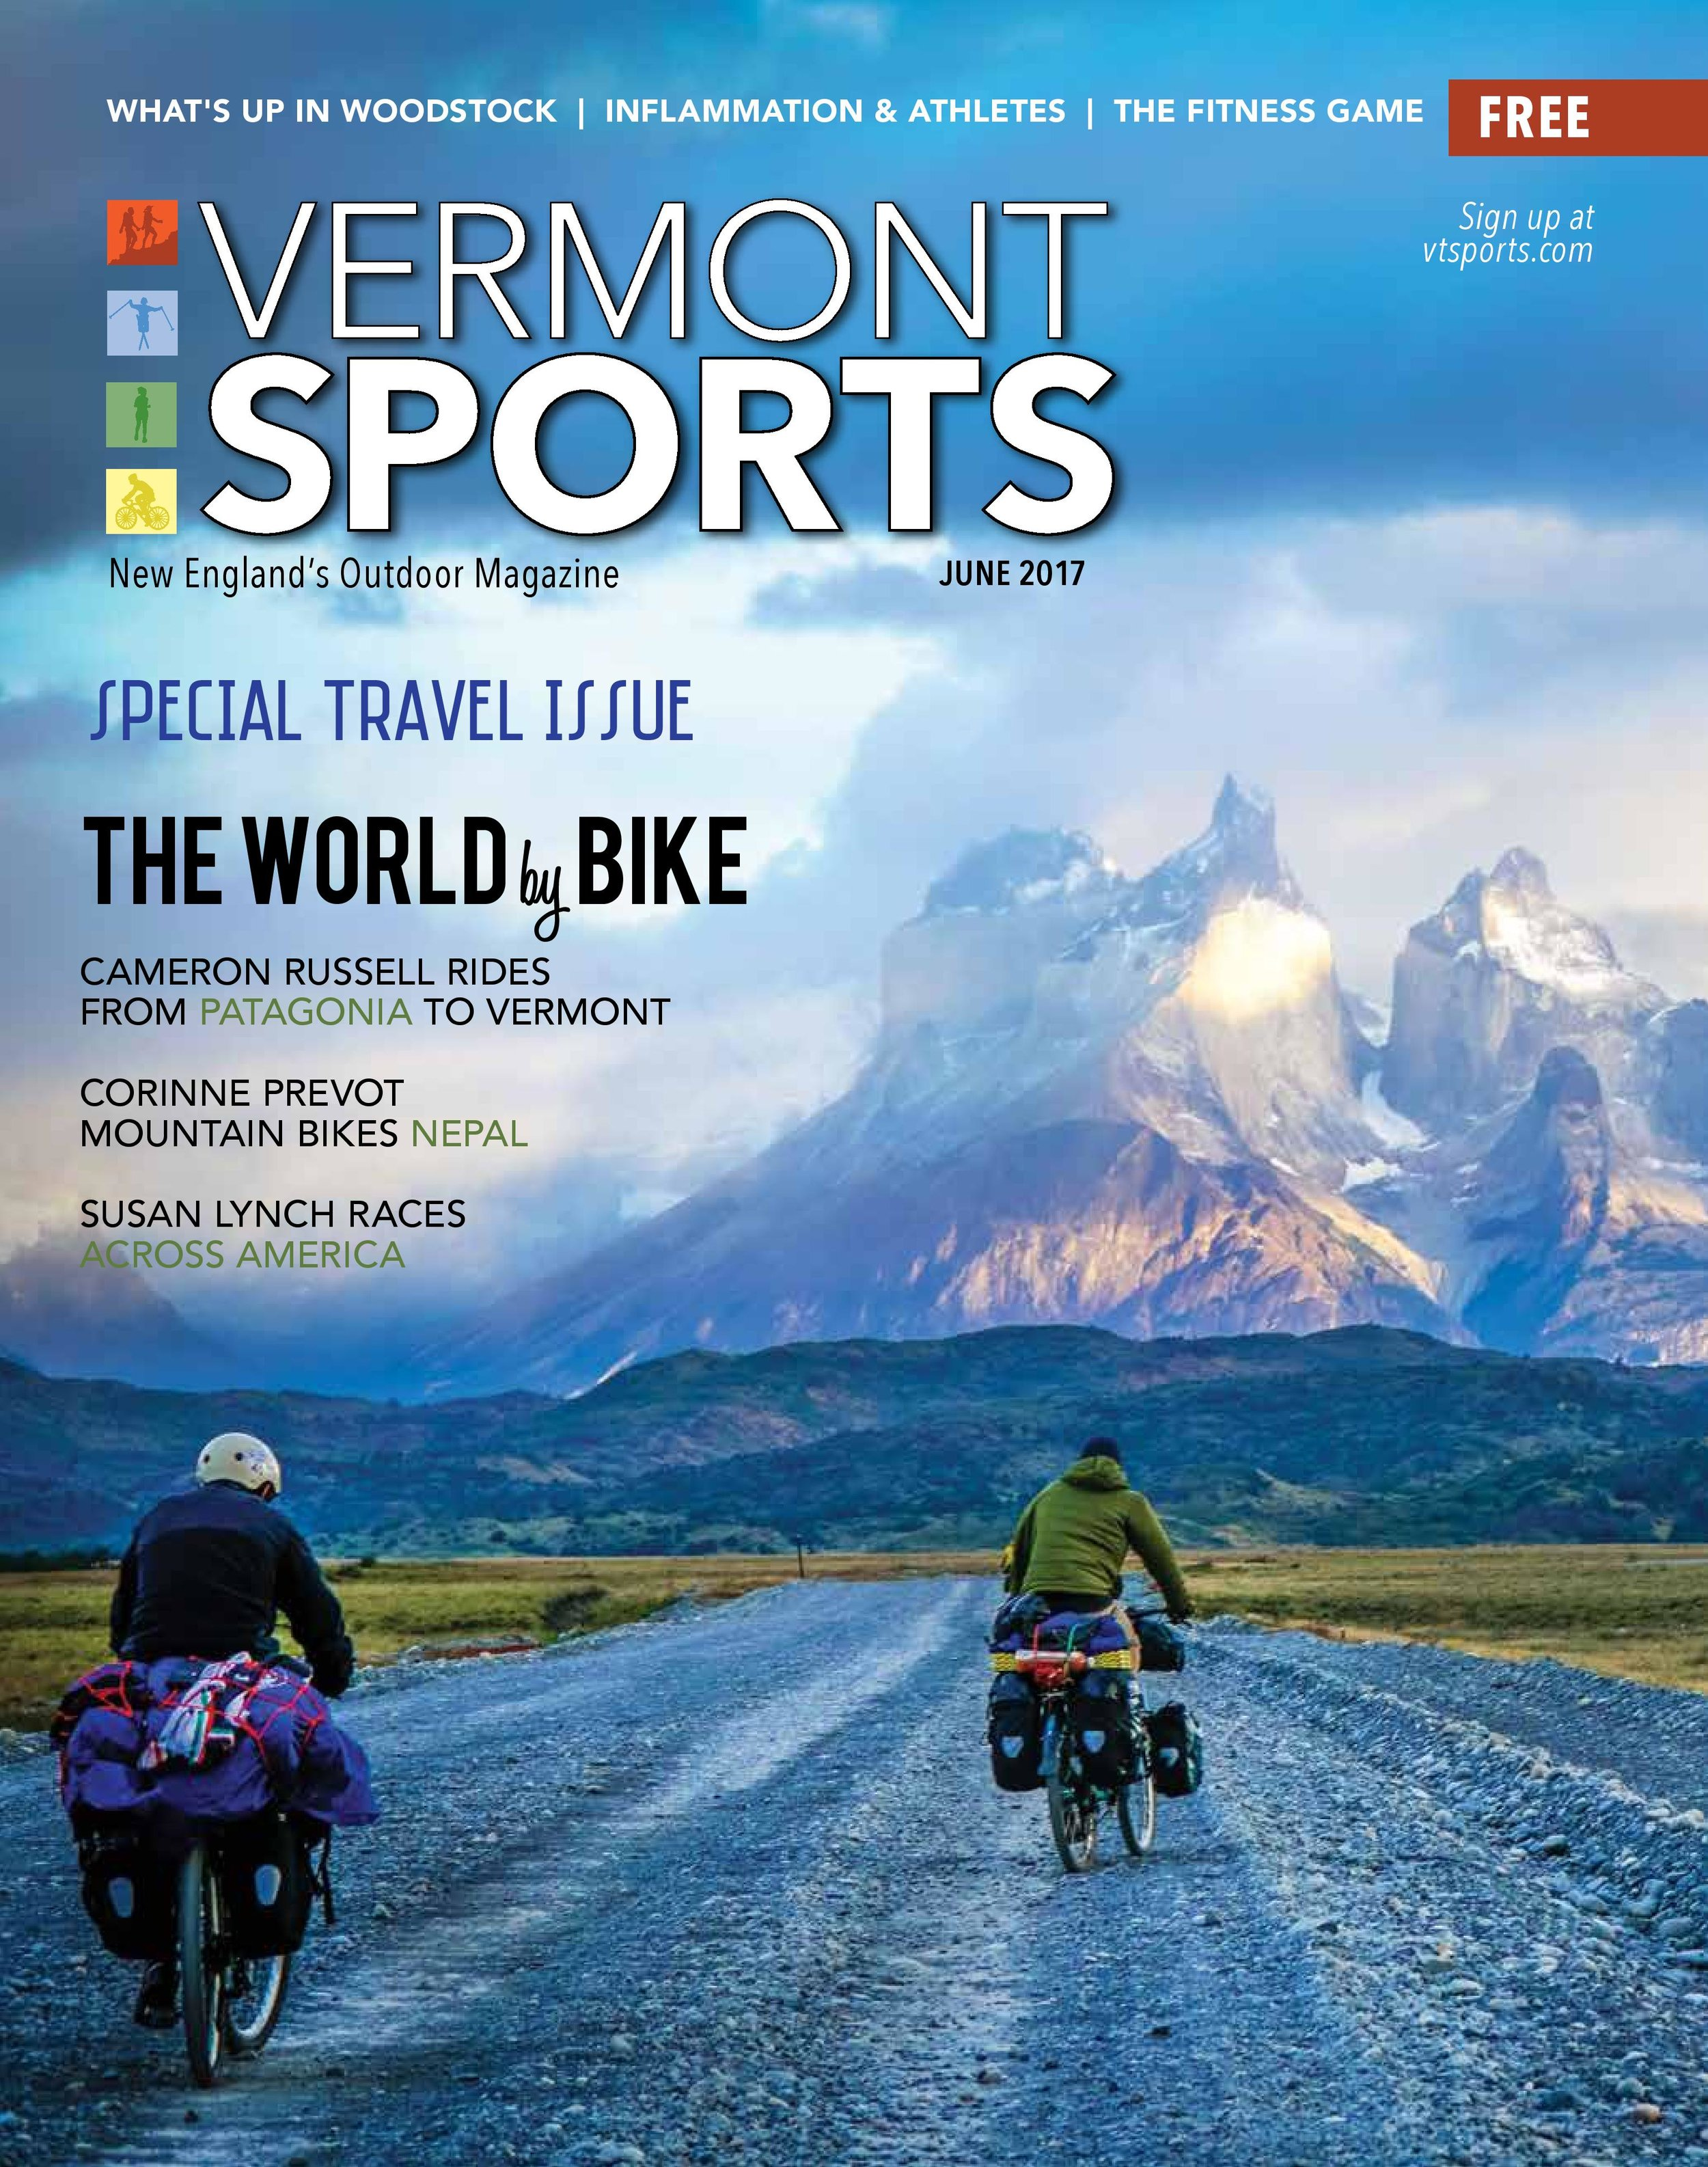 Vermont Sports - June 2017 Cover Story